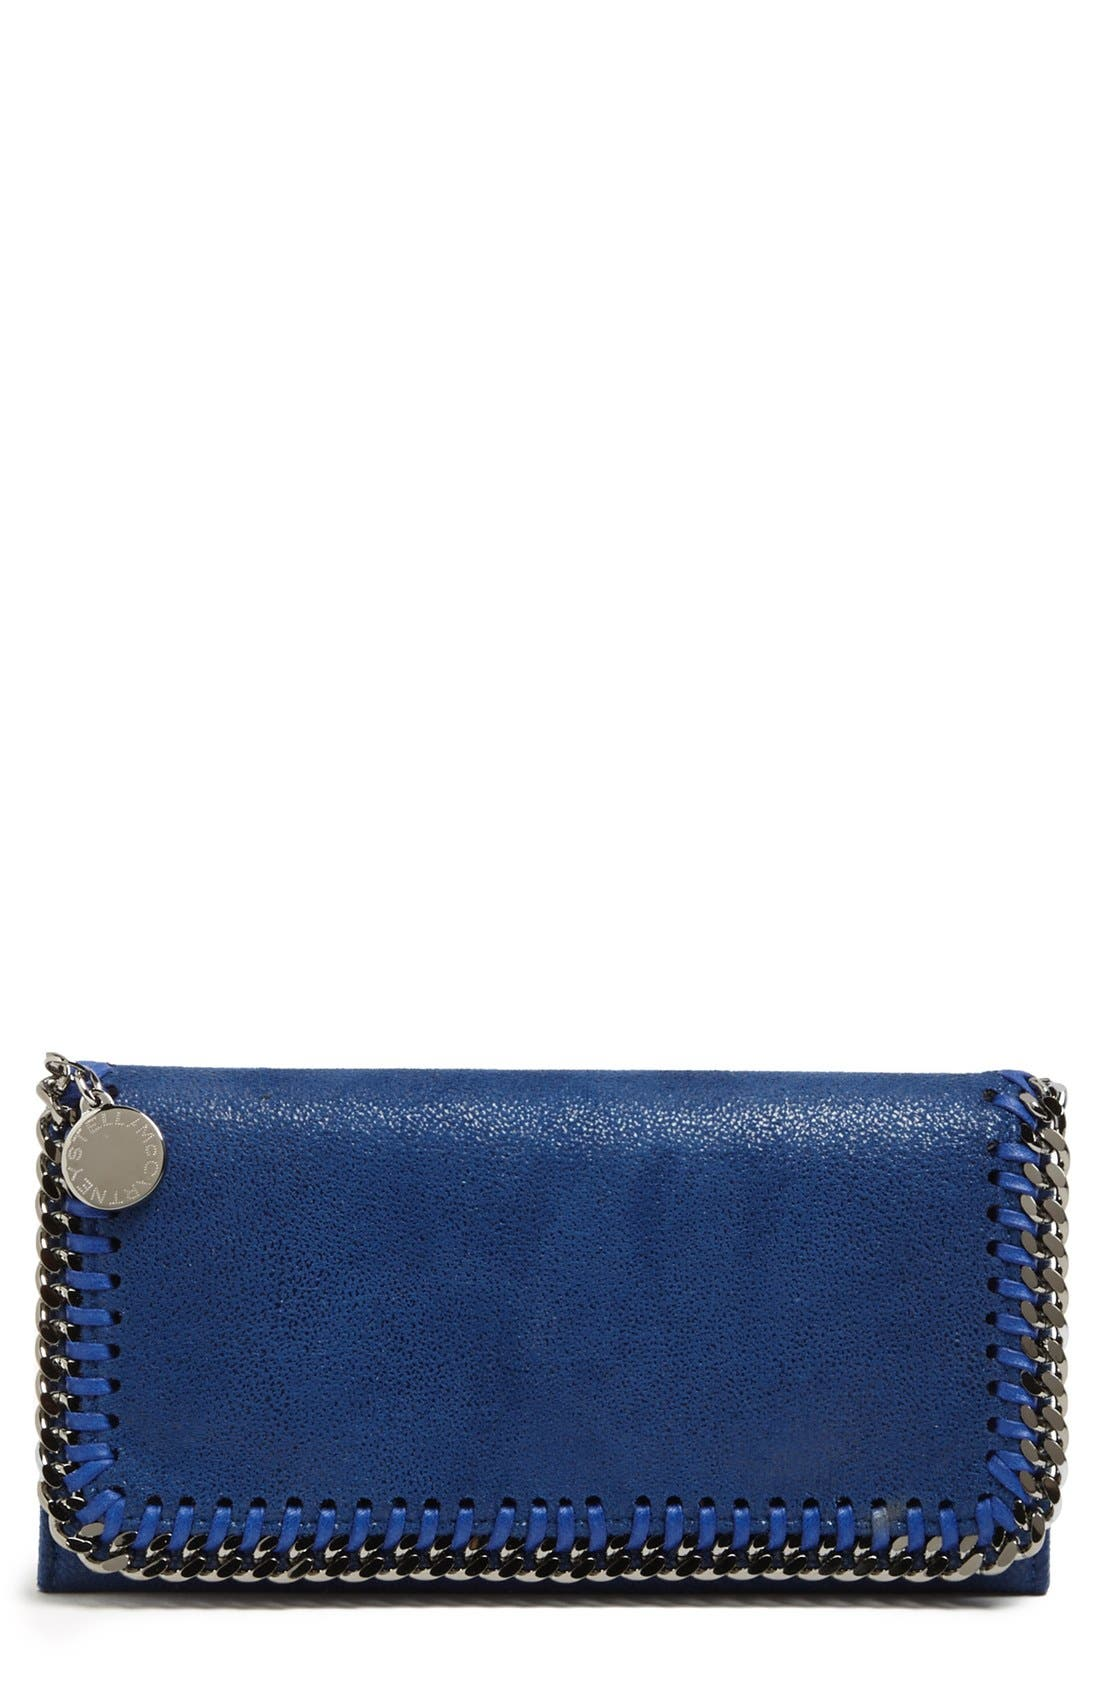 Alternate Image 1 Selected - Stella McCartney 'Falabella Shaggy Deer' Chamois Wallet